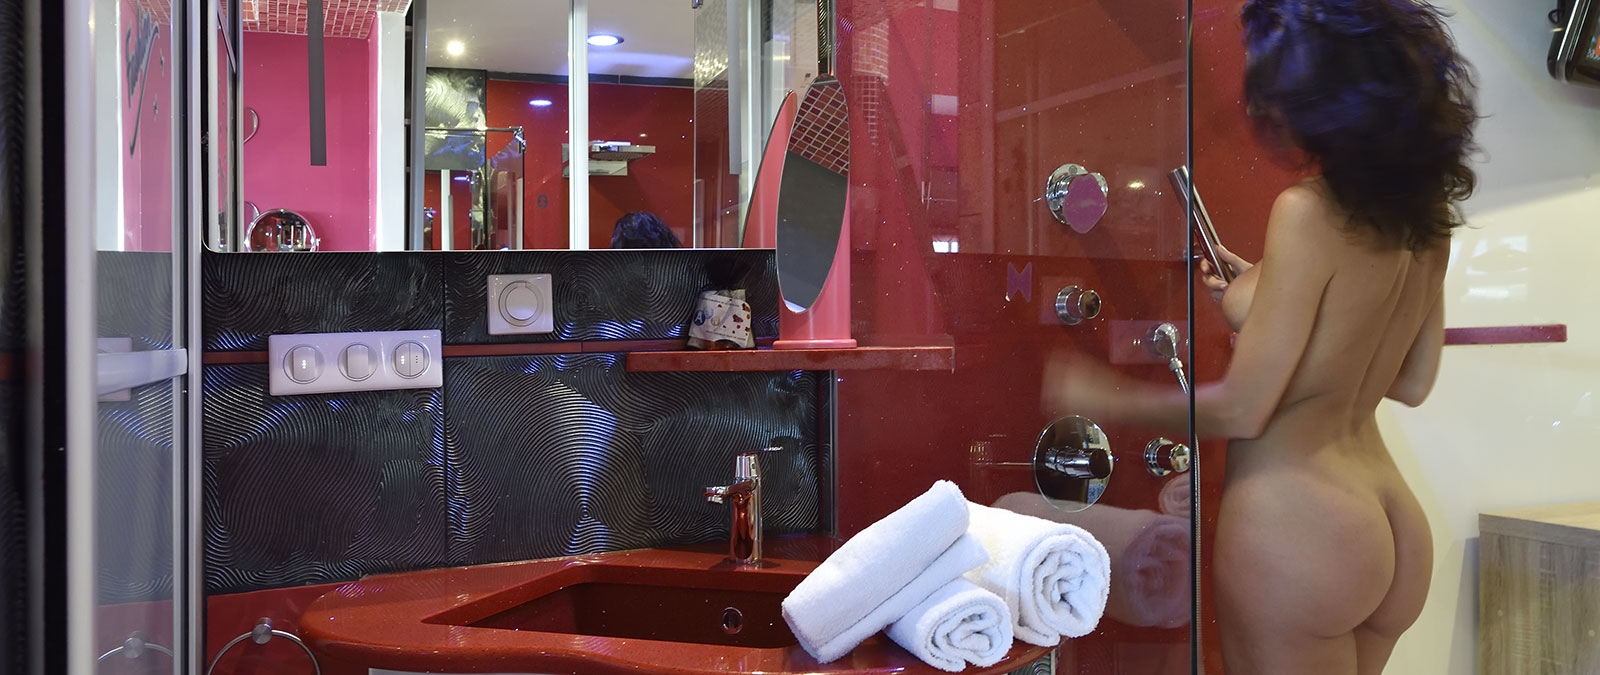 Bathroom with shower Amour Fou naturist studio flat for rent